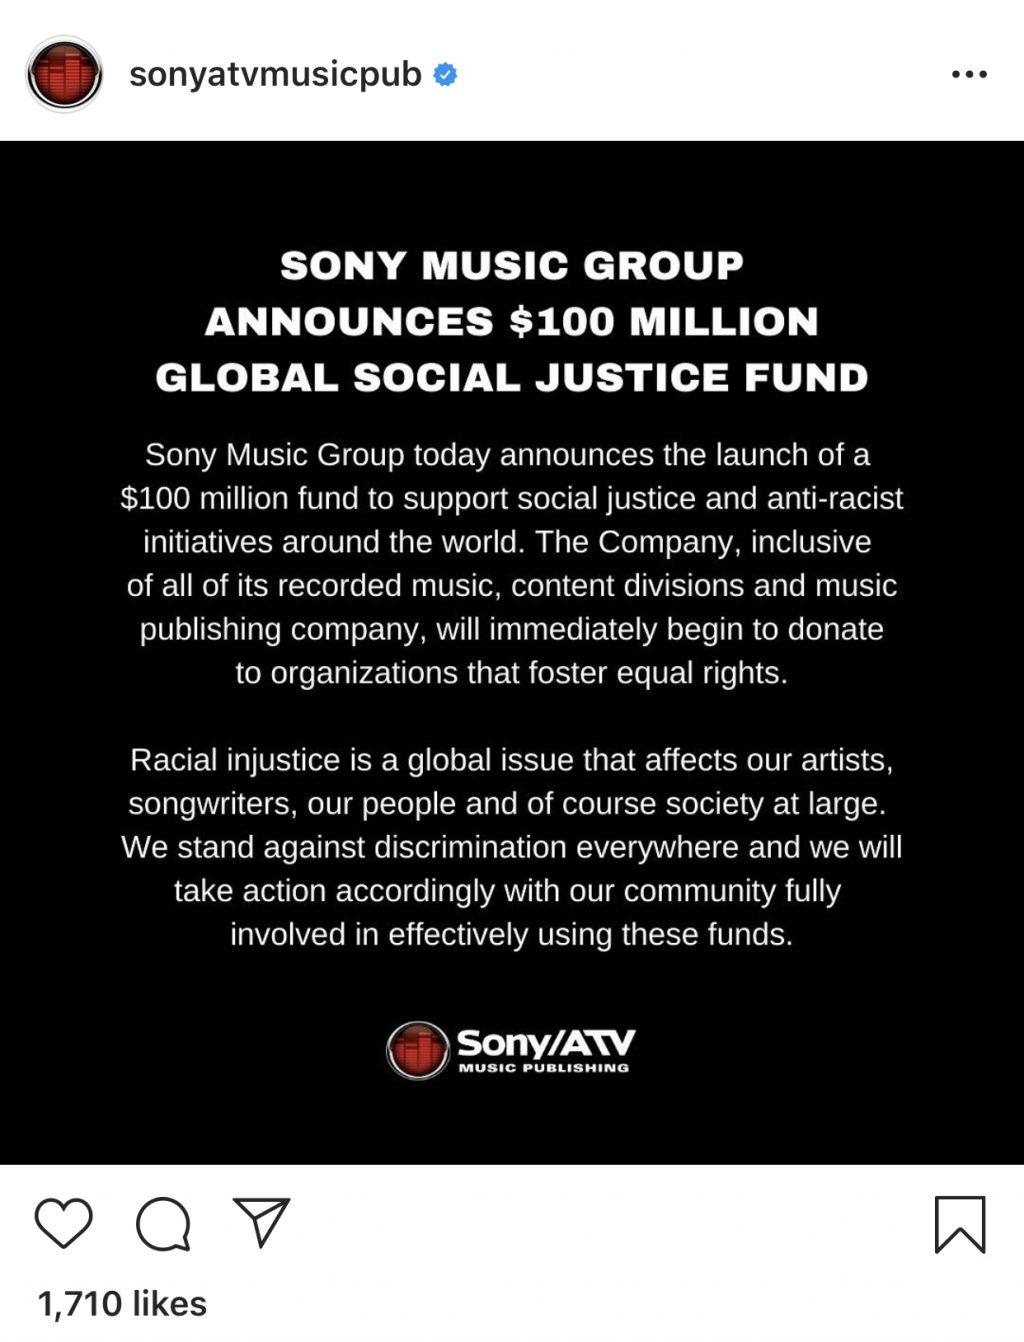 Sony ATV announces a $100 Million dollar donation to the global social justice fund in an Instagram post June 5. In response to the Black Lives Matter movement, many companies have donated to local causes and expressed solidarity. Photo courtesy of Instagram